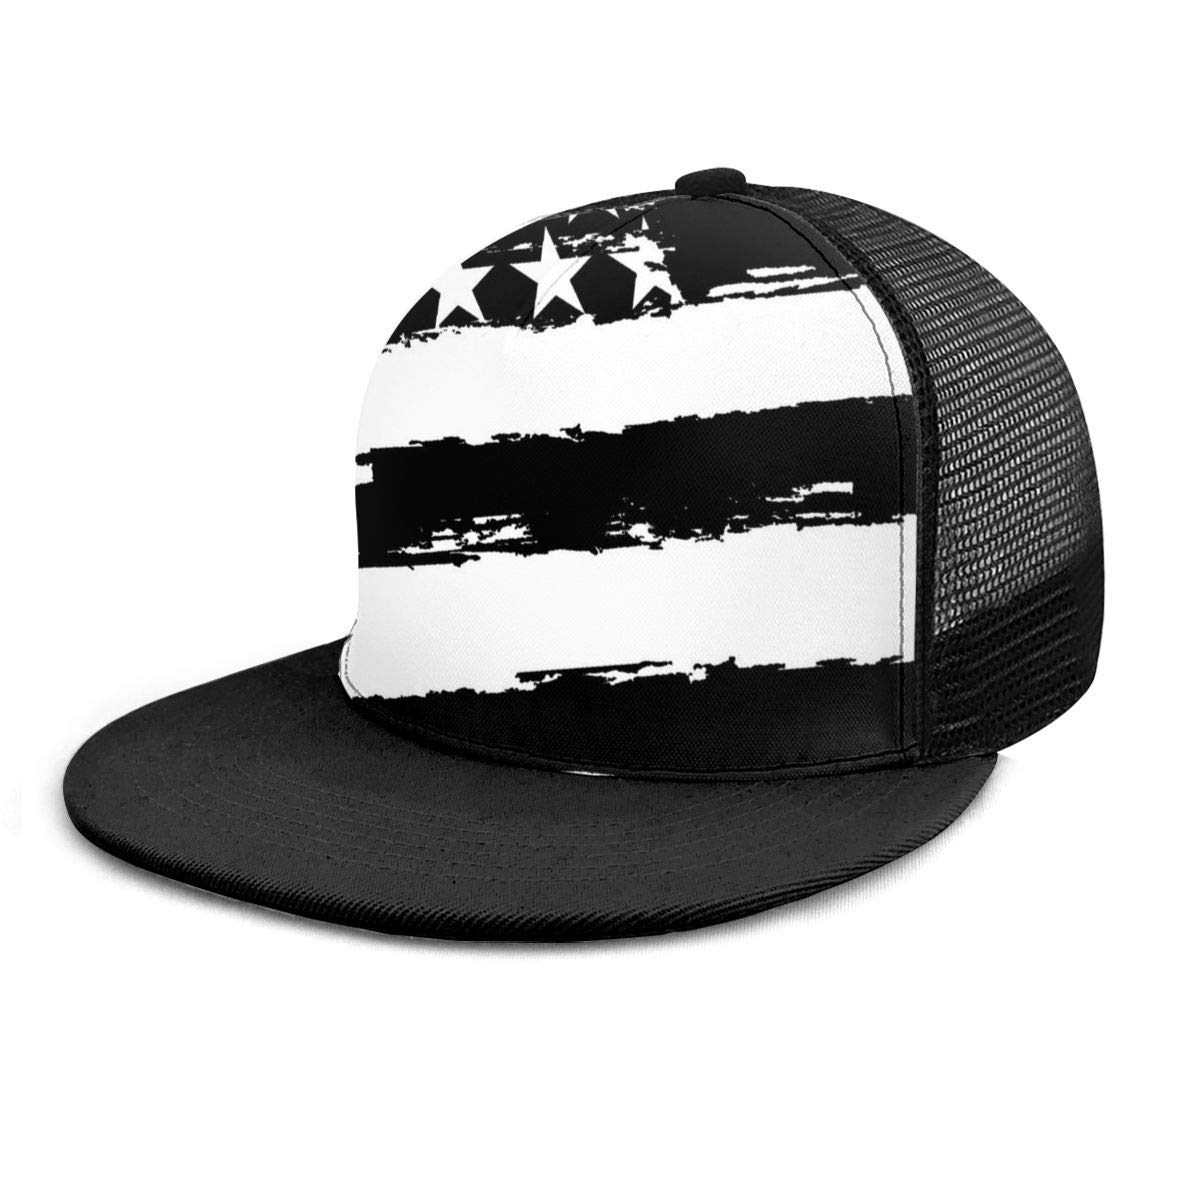 Ry71@Cap Boys and Girls 100/% Polyester Black and White American Flag Mesh Hat Low Profile Snapback Hat for Unisex